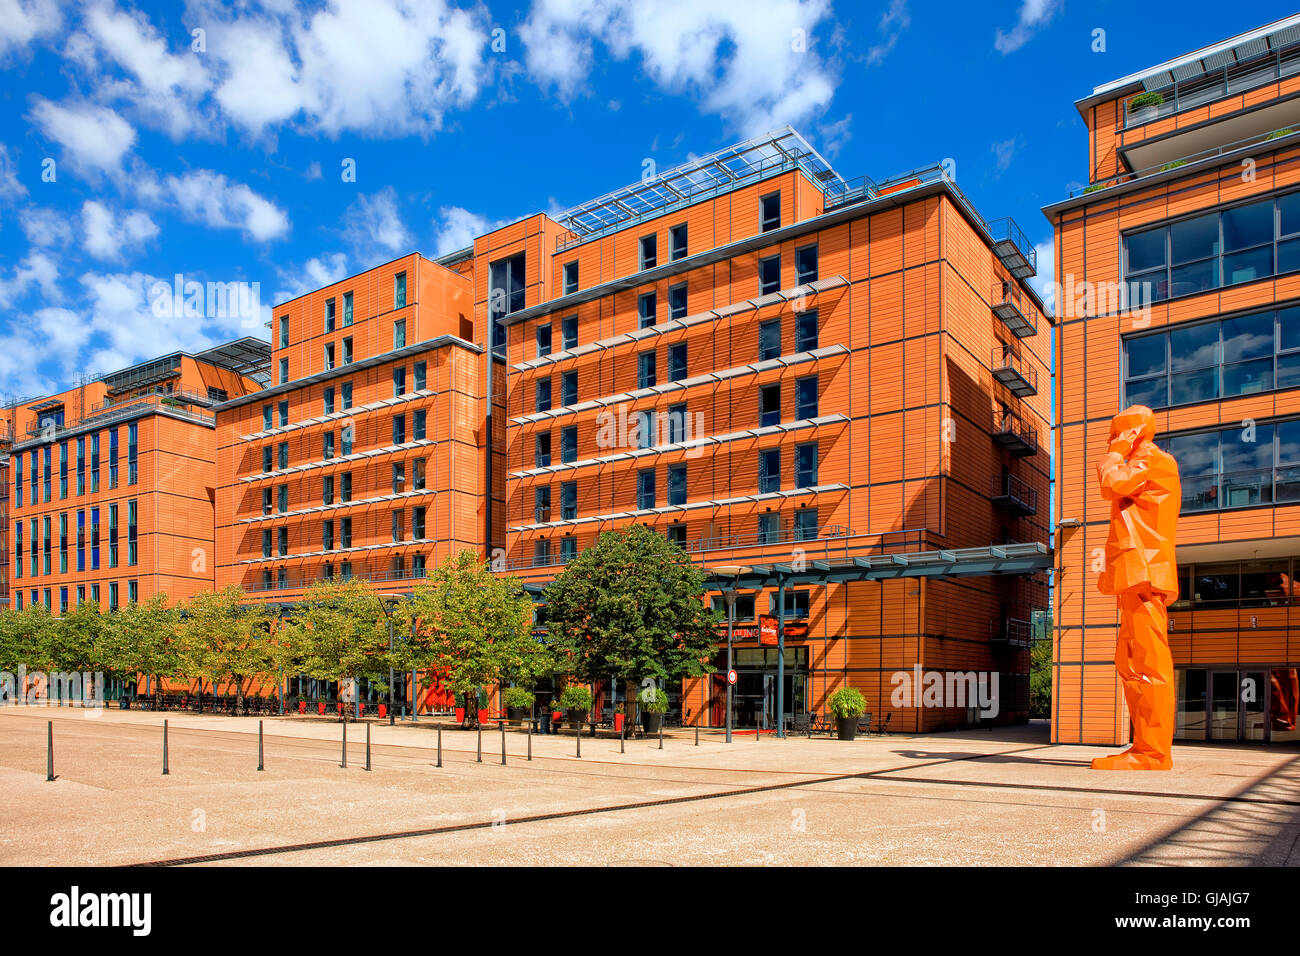 Modern architecture in the cite Internatinale in Lyon, France - Stock Image